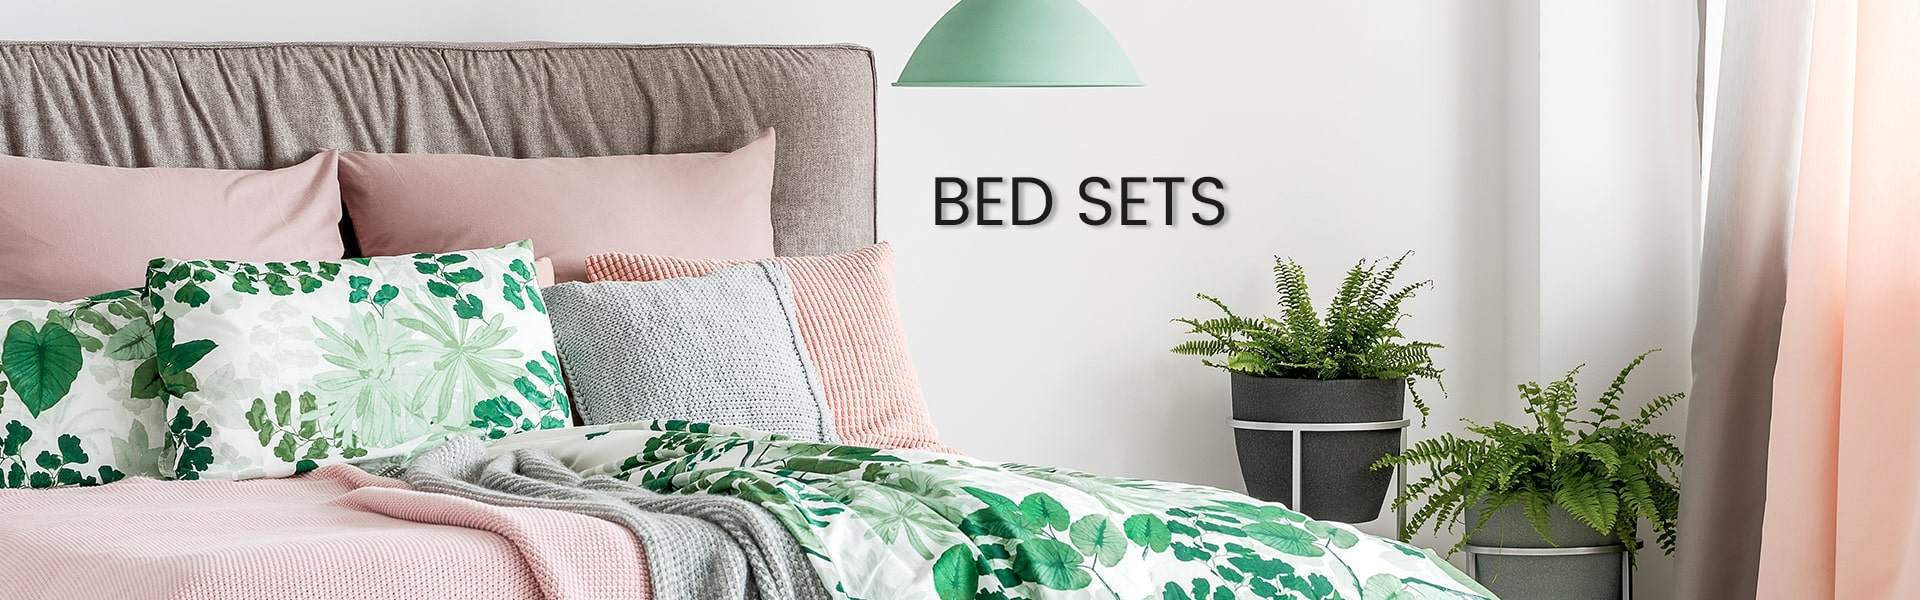 Luxury Bed Sets